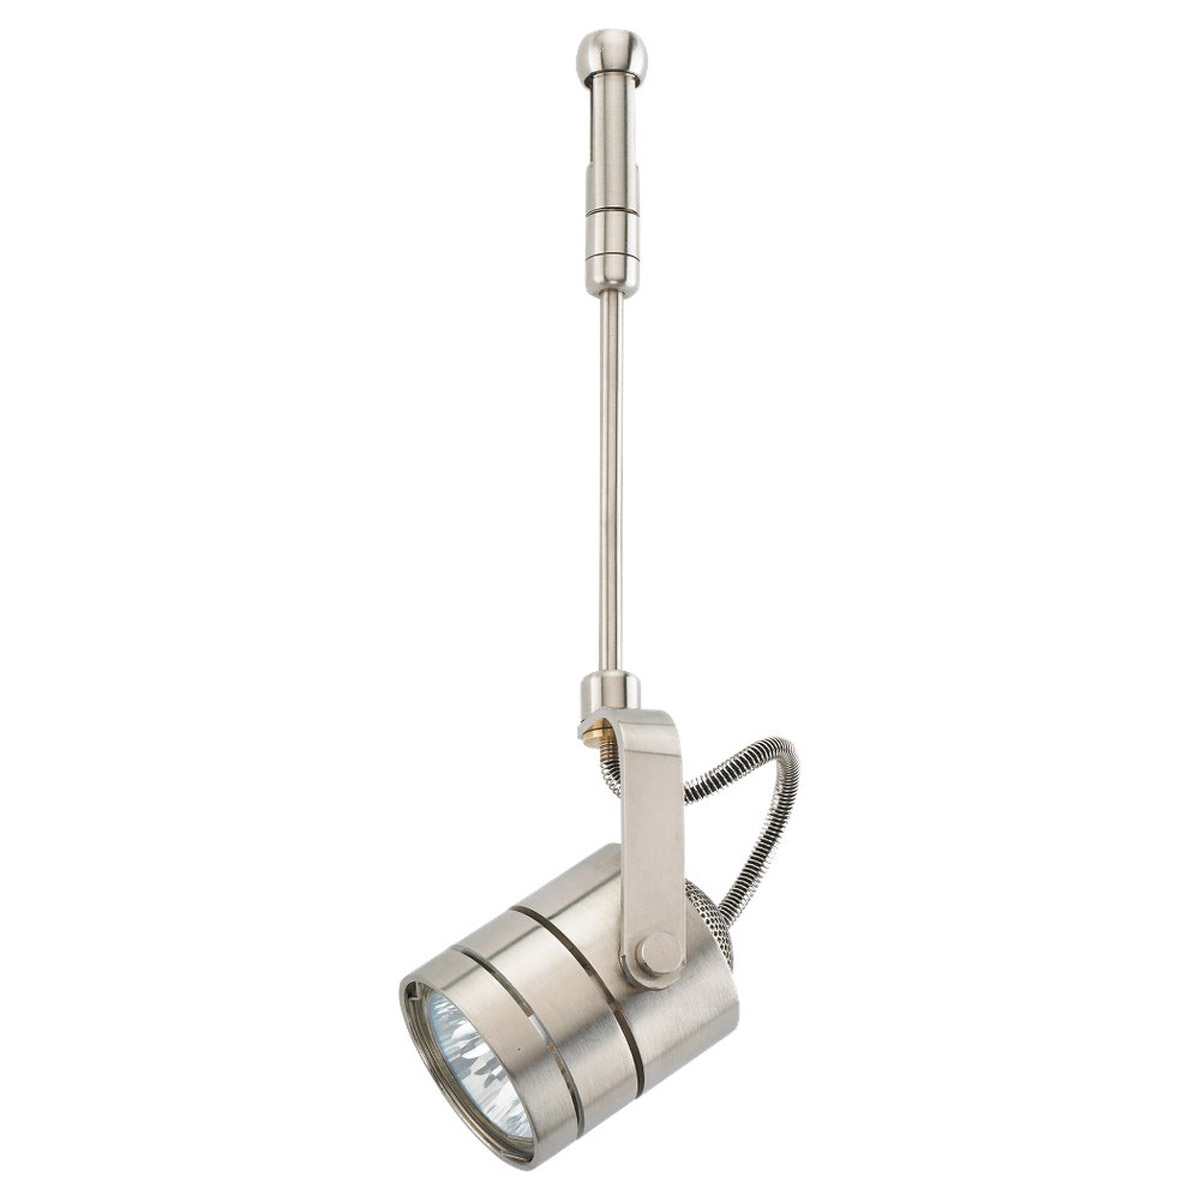 Sea Gull Lighting Ambiance Rtx Directional Roundback 6in Stem with Rail Adapter in Brushed Stainless 95155-98